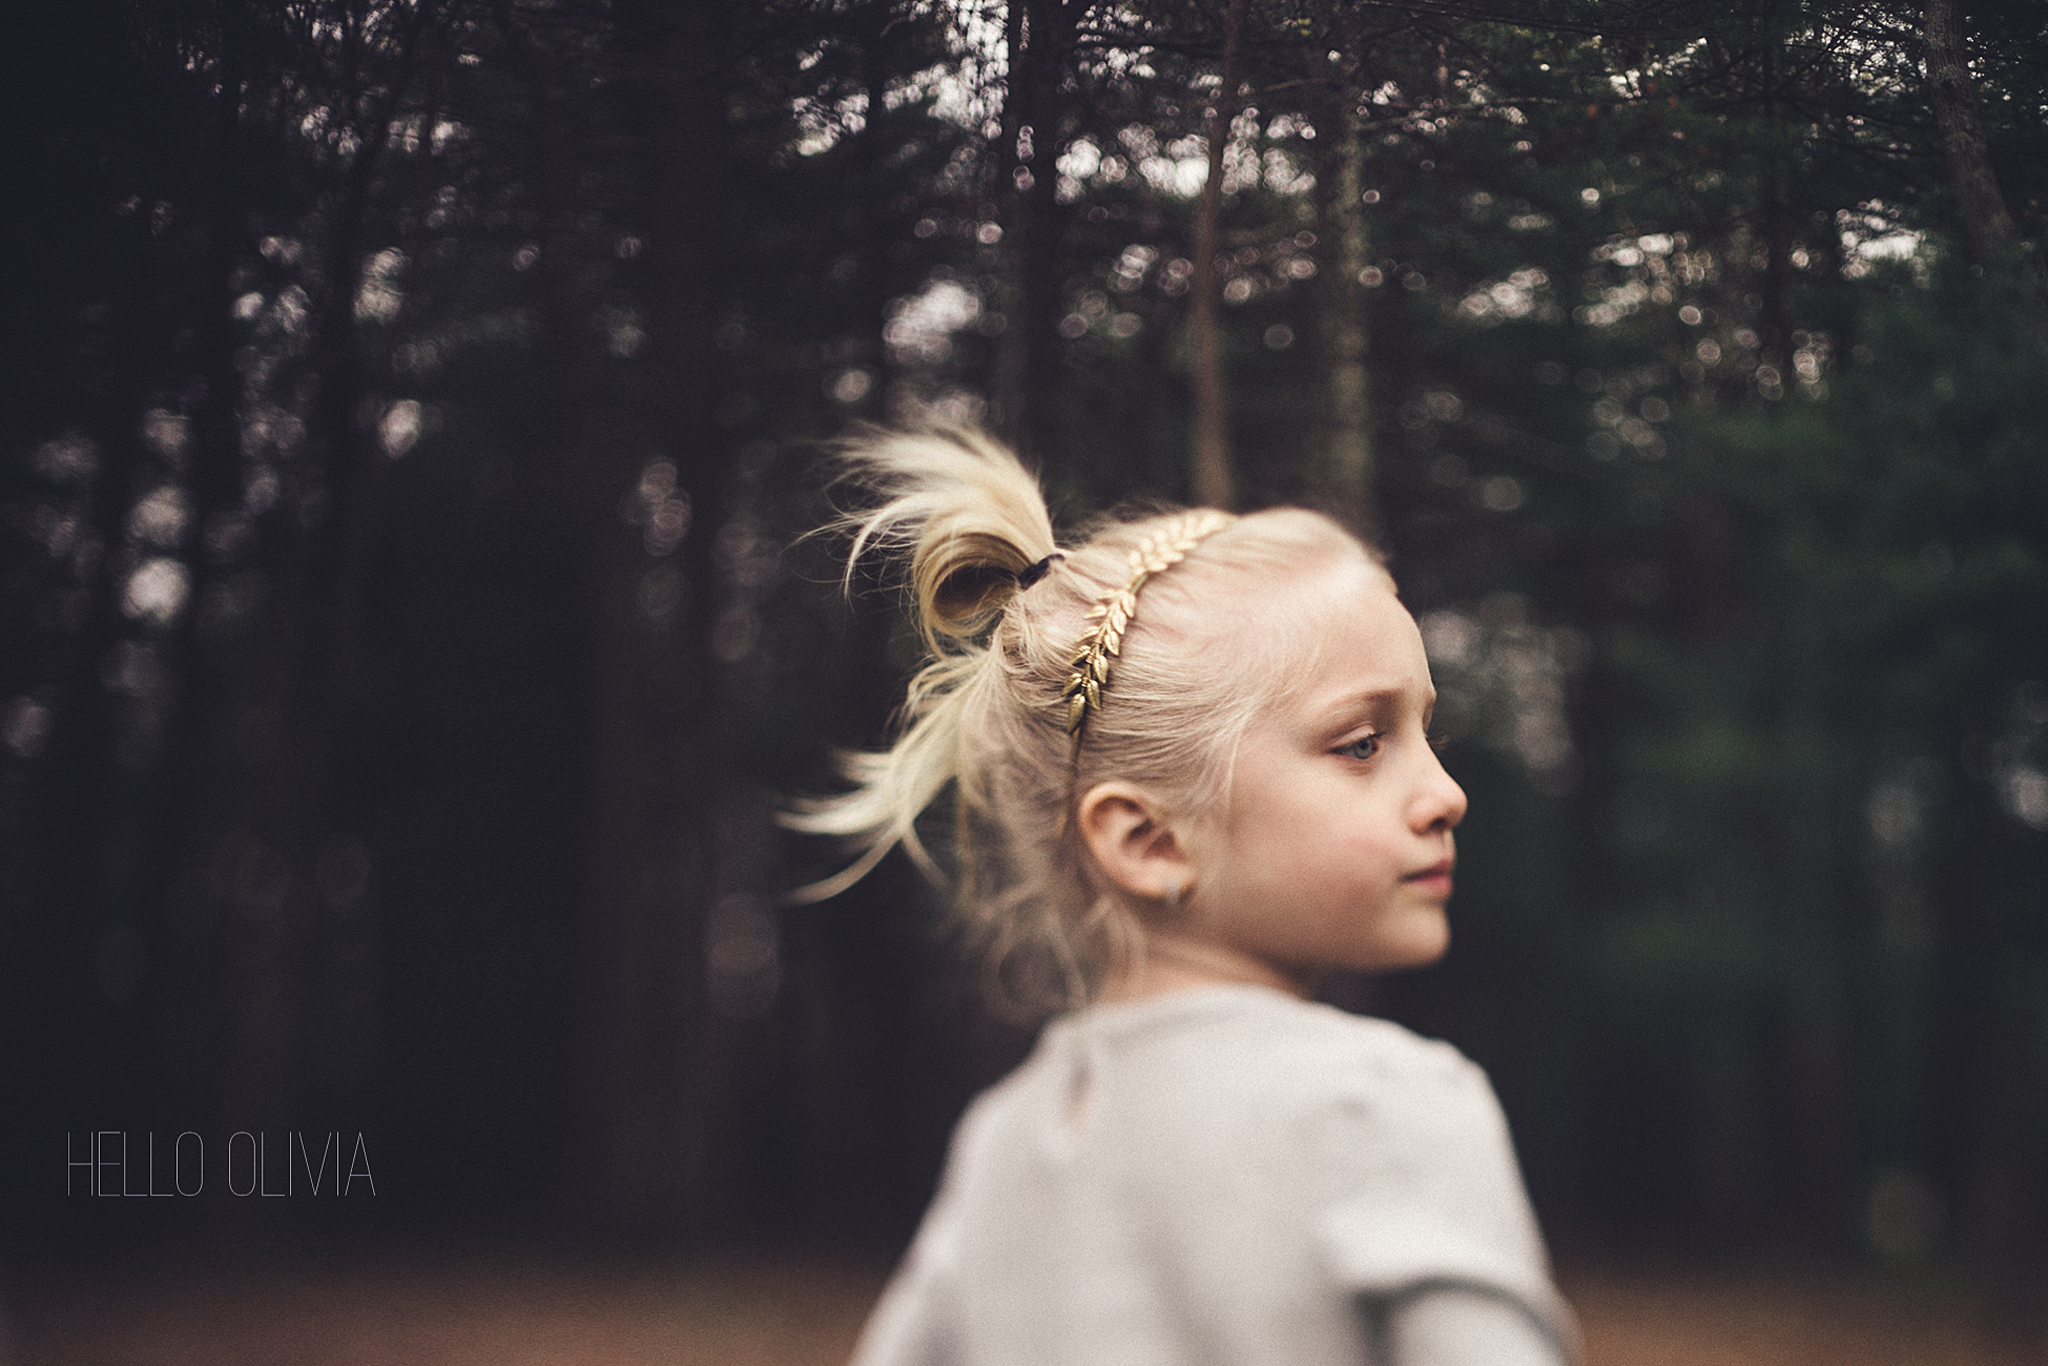 Hello-olivia-photography-long-island-photographer-freelens-child-photographer-family-beauty.png